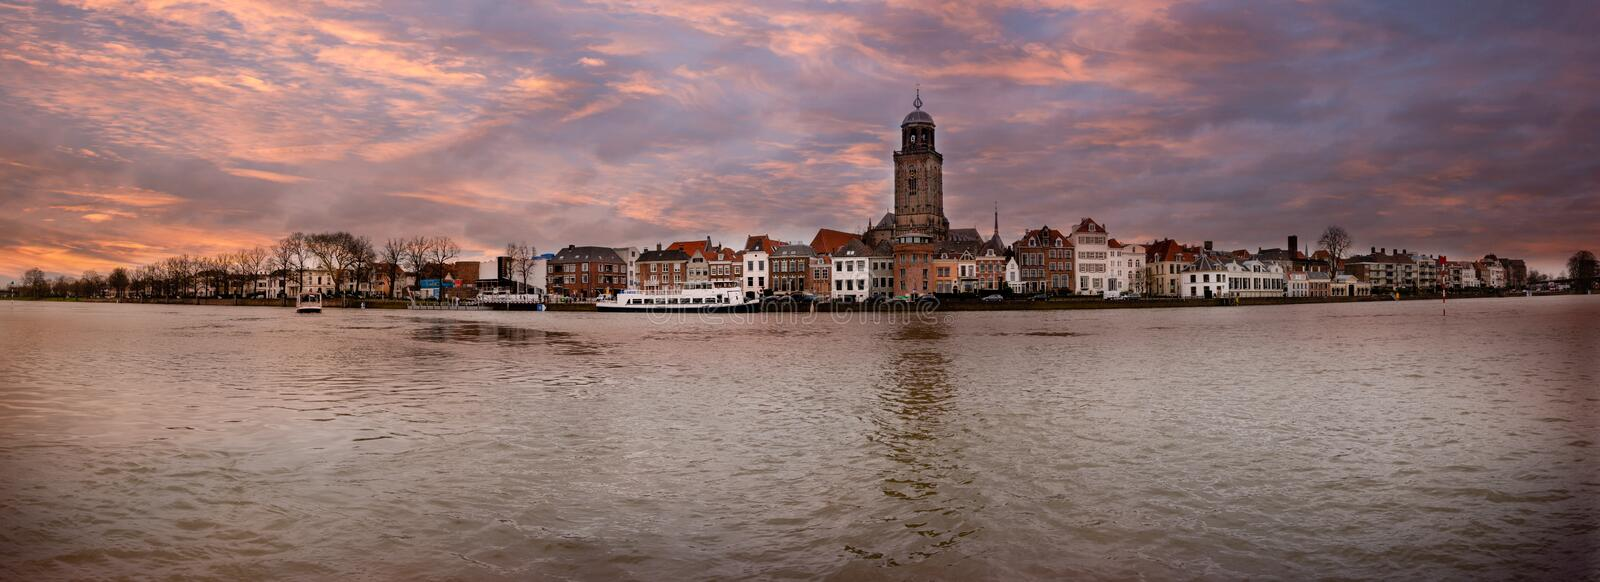 Panorama photo taken in winter of the Hanseatic city of Devente. R on the other side of the river IJssel, with beautiful colored cloudy skies stock photos